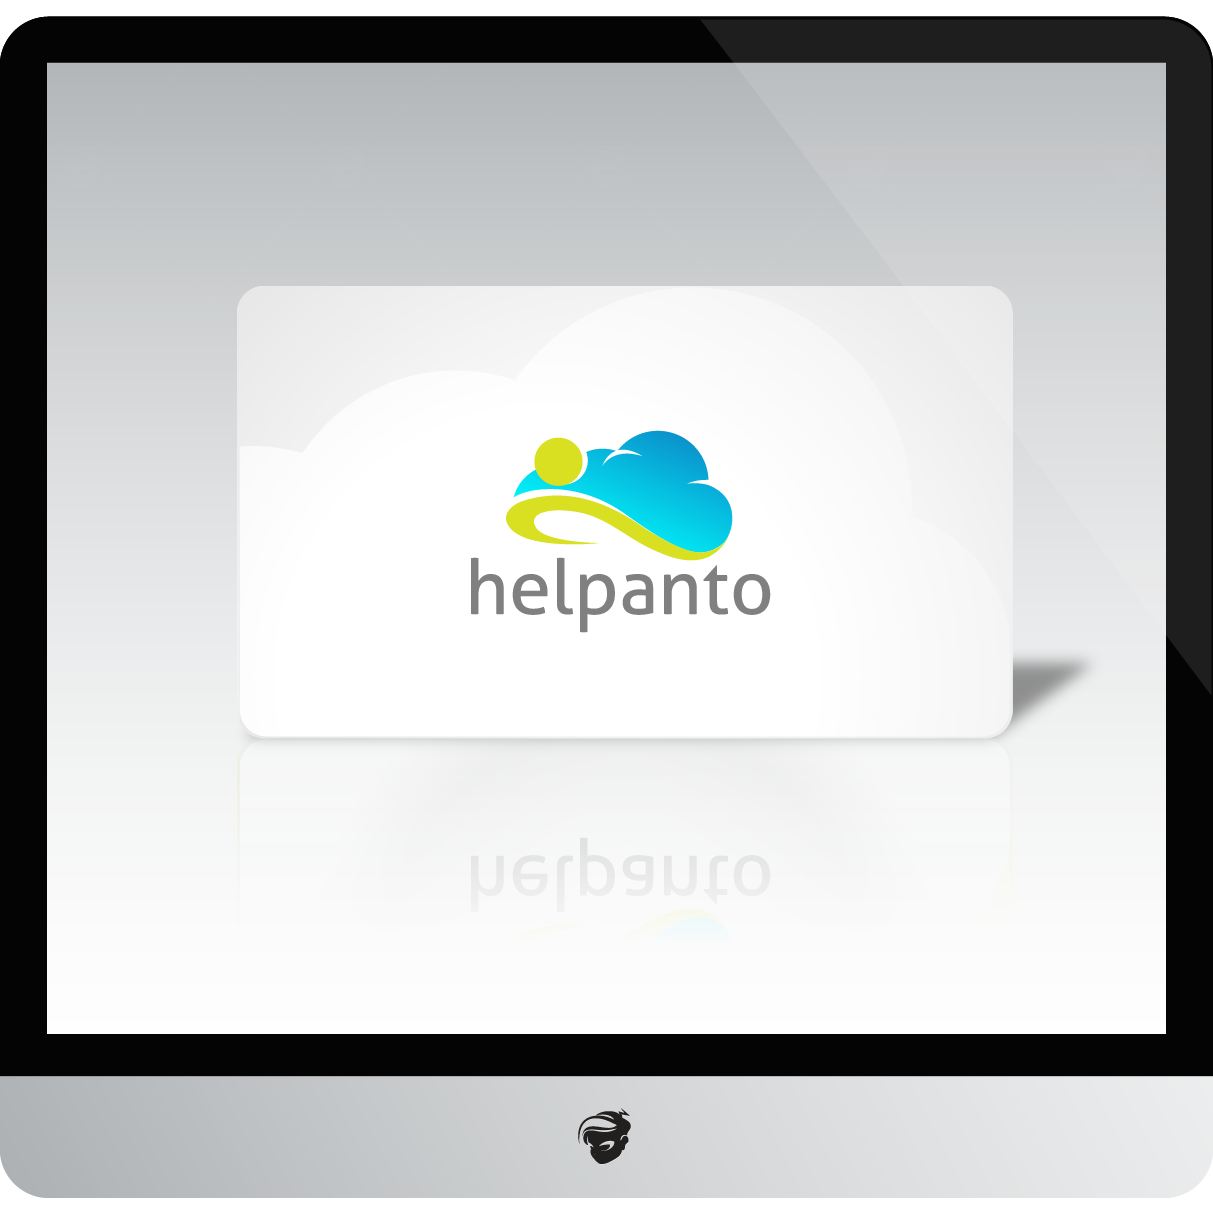 Logo Design by zesthar - Entry No. 142 in the Logo Design Contest Artistic Logo Design for helpanto.